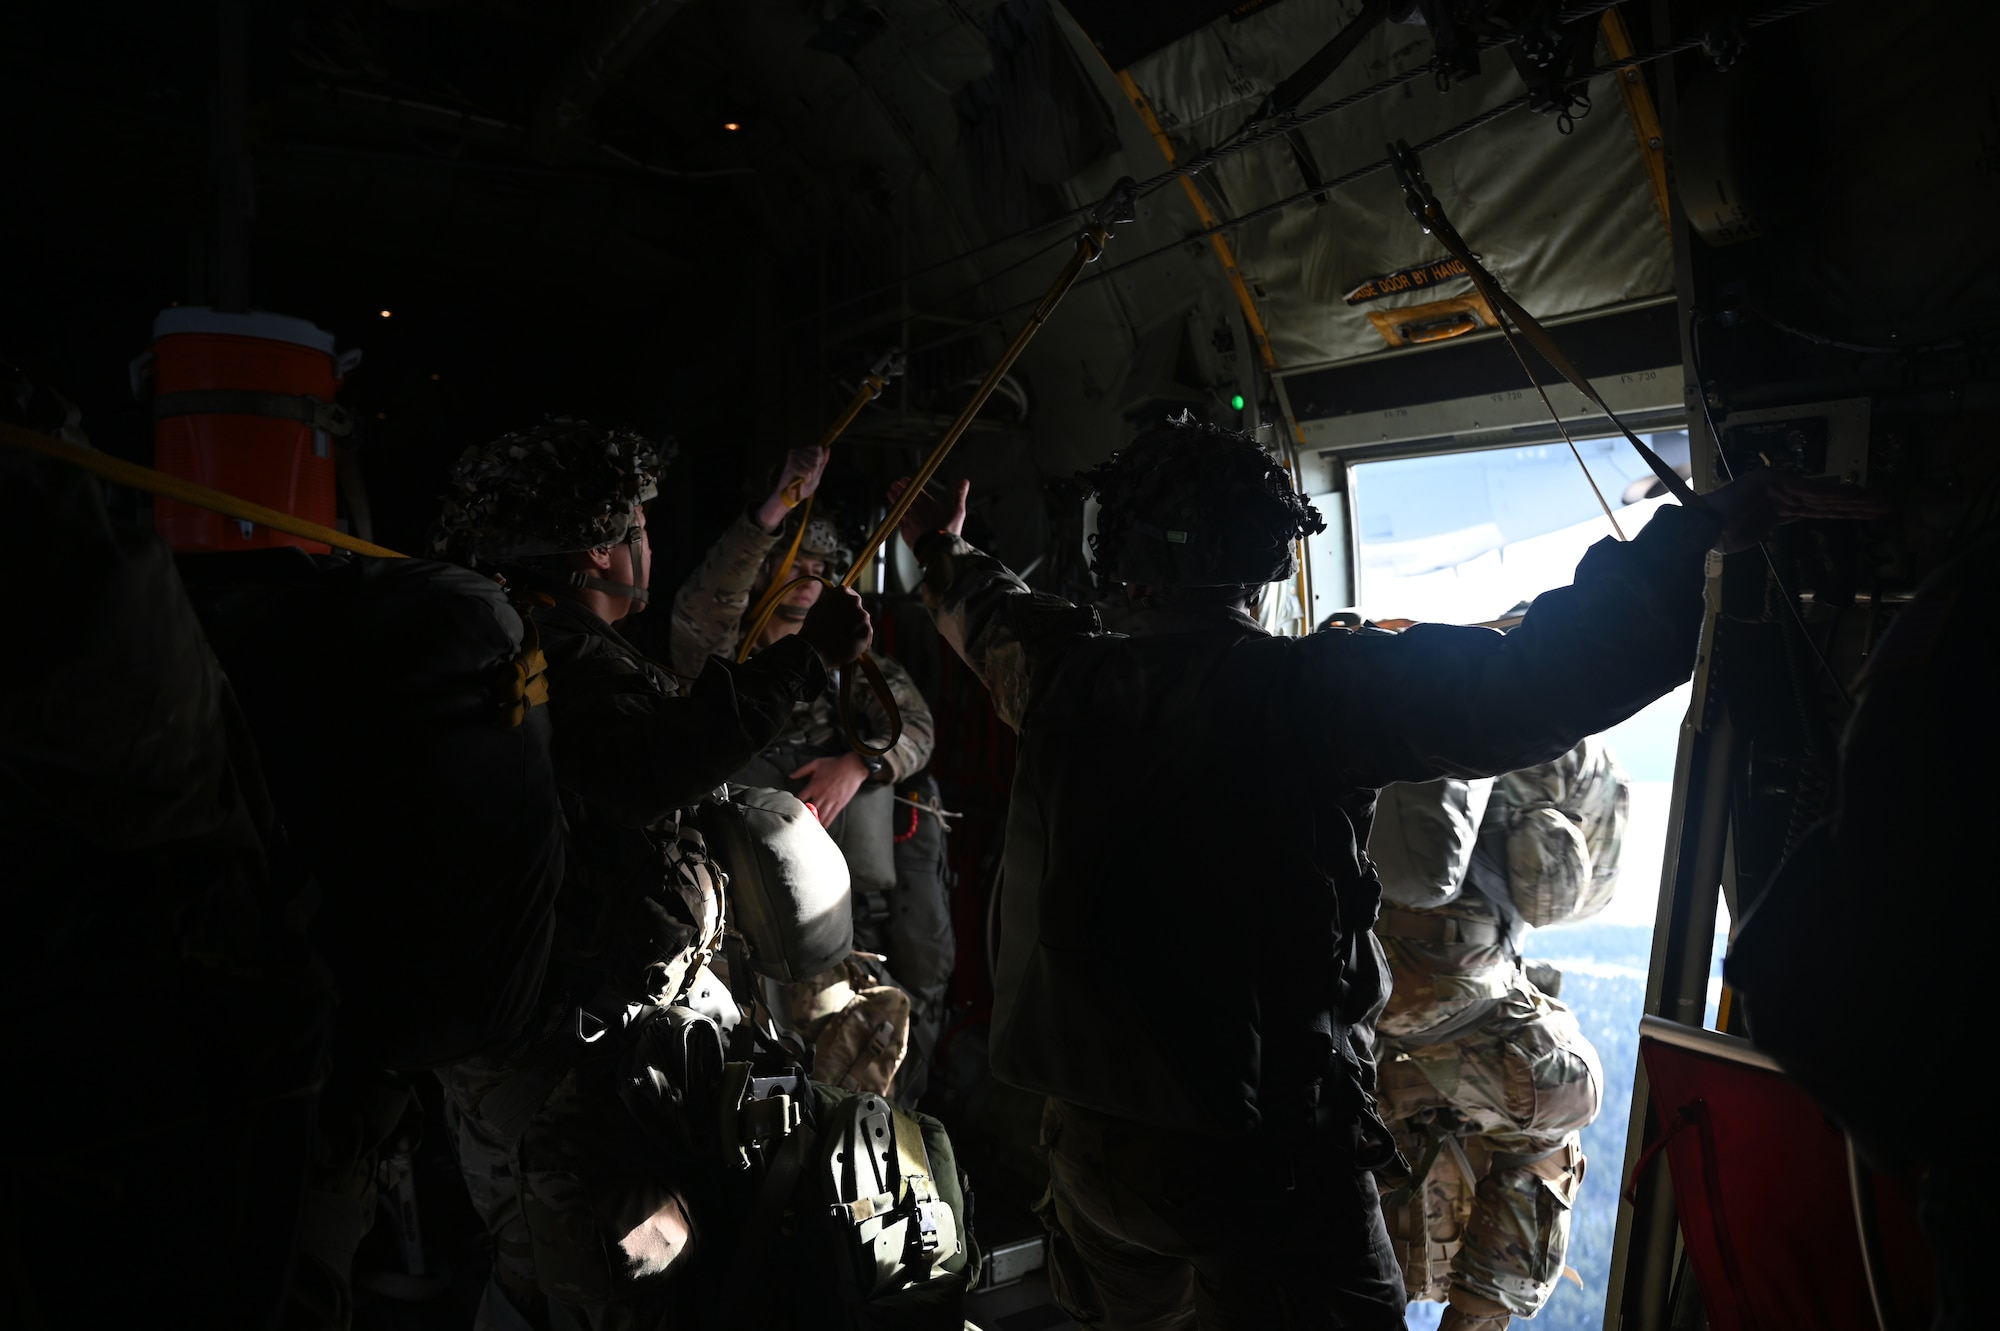 U.S. Army paratroopers assigned to the 1st Squadron (Airborne), 91st Cavalry Regiment, 173rd Airborne Brigade, assigned to Grafenwoehr Training Area, Germany, jump out of a U.S. Air Force C-130J Super Hercules aircraft.